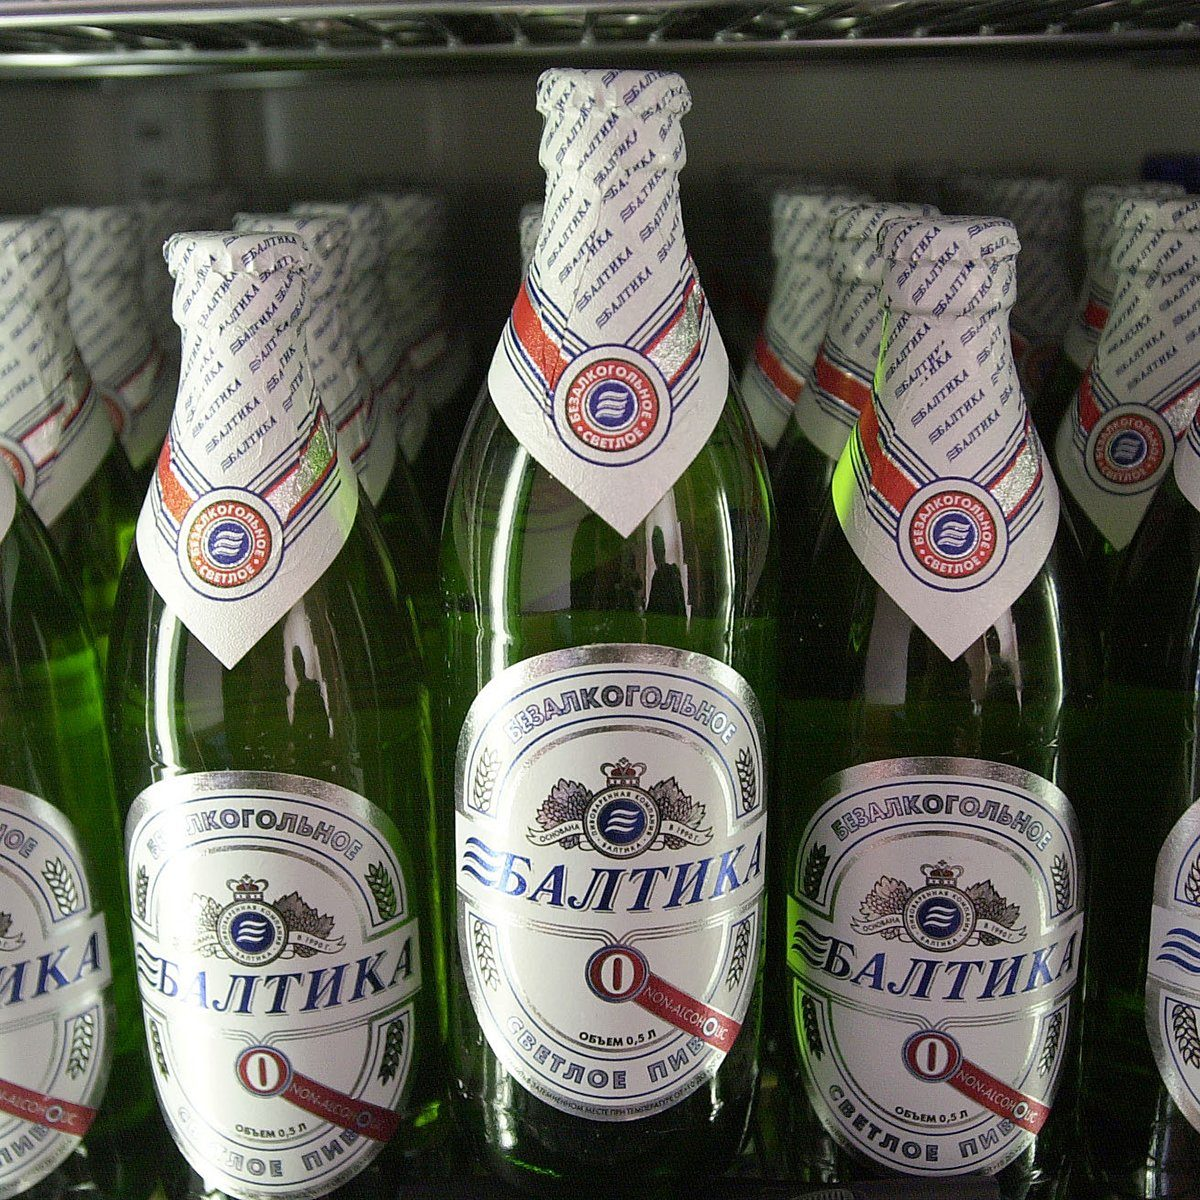 """390421 04: Russia''s new non-alcoholic beer, """"Baltika No. 0,"""" which has been selling remarkably fast since its February 28, 2001 release date, is seen at the Baltika brewery in St. Petersburg, Russia. Brewed in the nation''s largest brewery by the Swedish-Finnish firm Baltika, some say the surge in it''s popularity is due to it being seen as a """"healthy"""" alternative to vodka. (Photo by Scott Peterson/Getty Images)"""